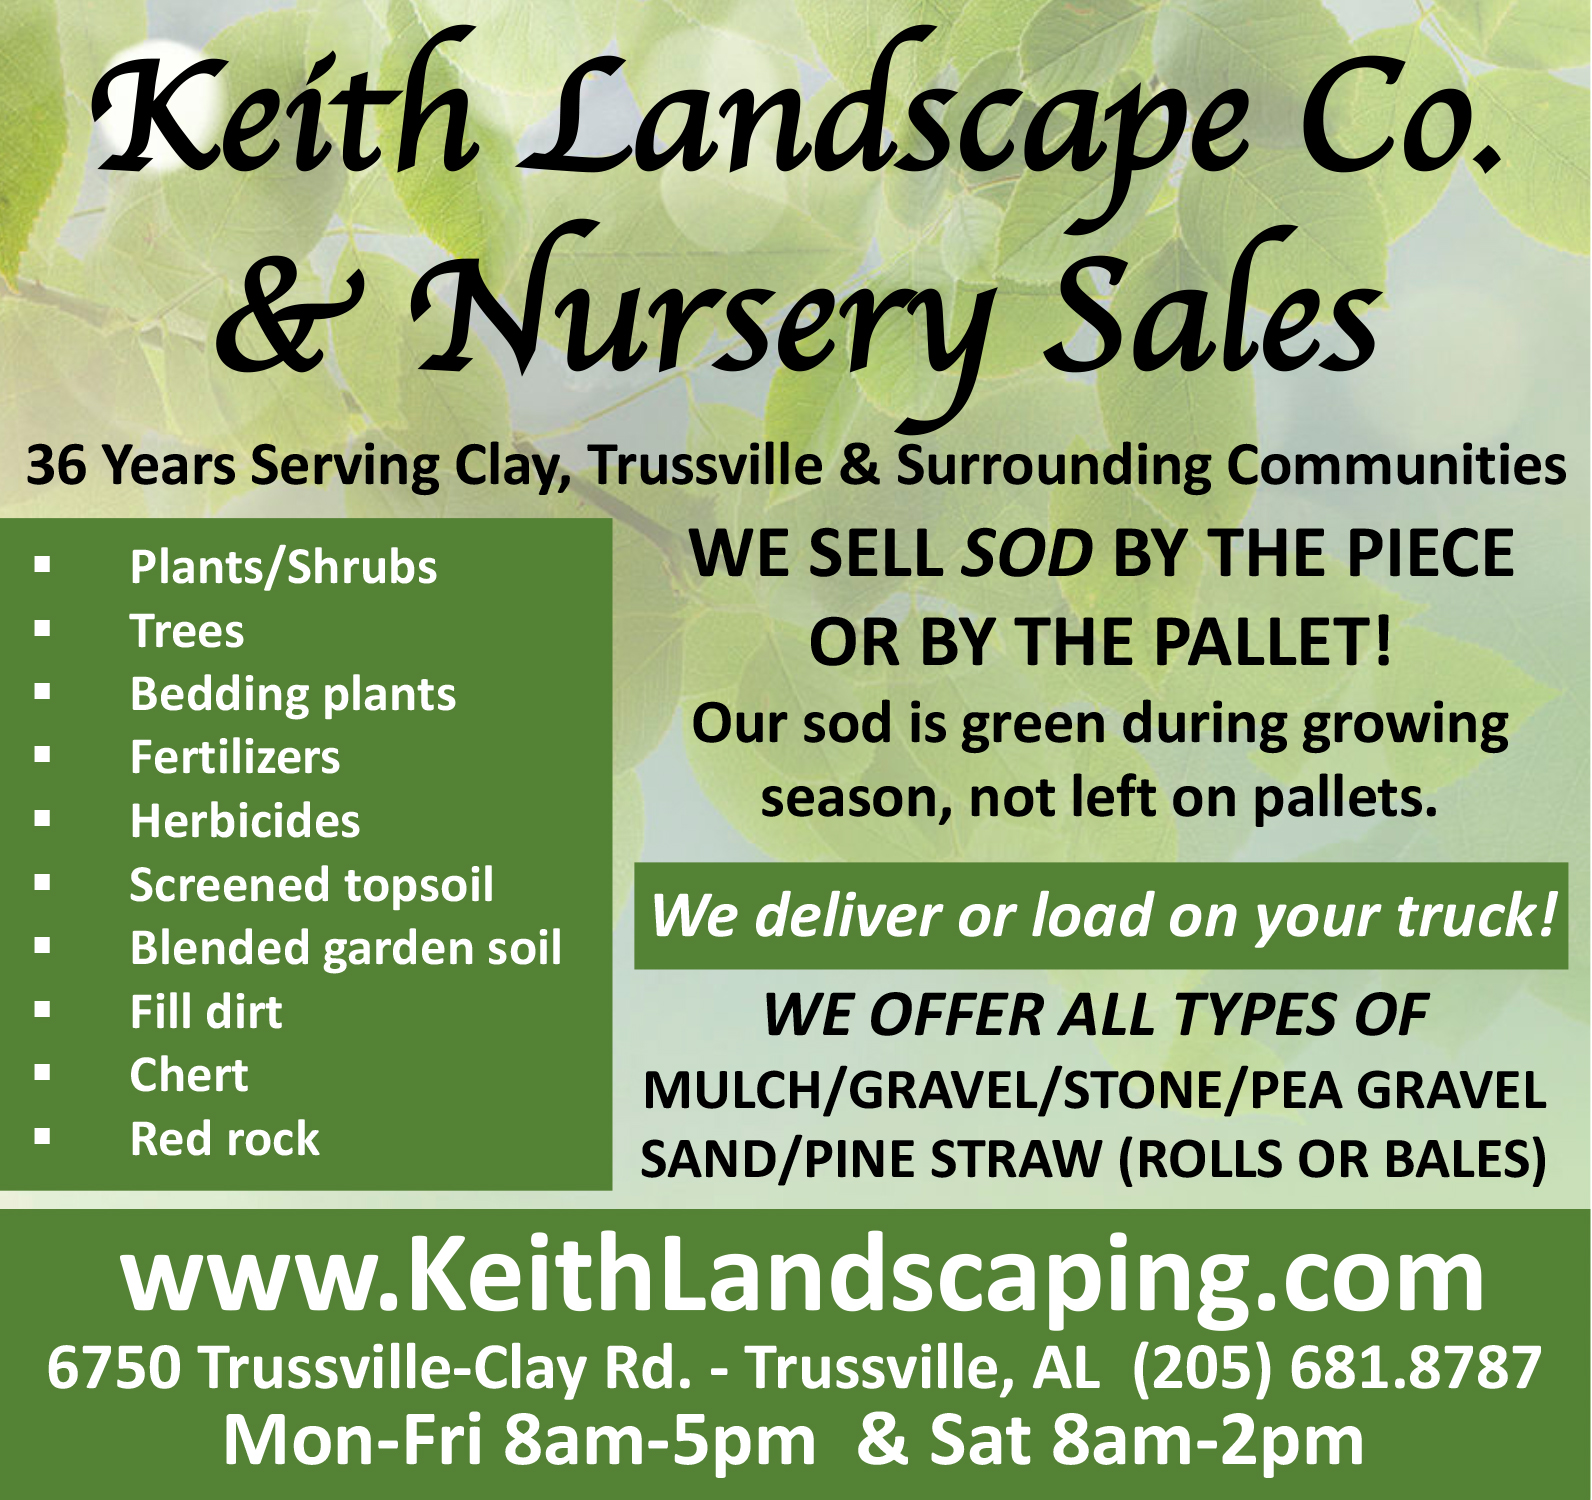 Keith Landscaping